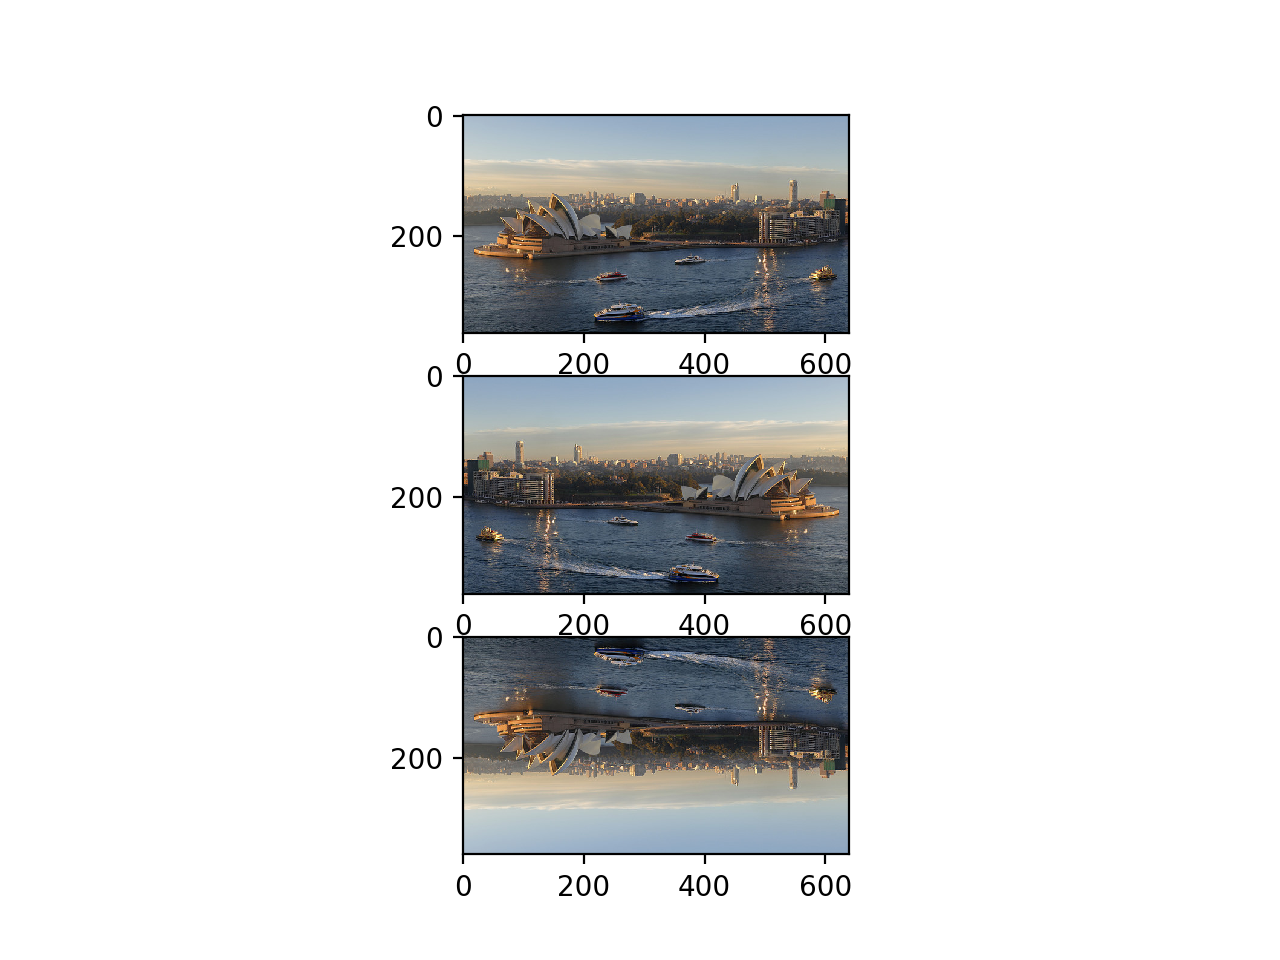 Plot of Original, Horizontal, and Vertical Flipped Versions of a Photograph